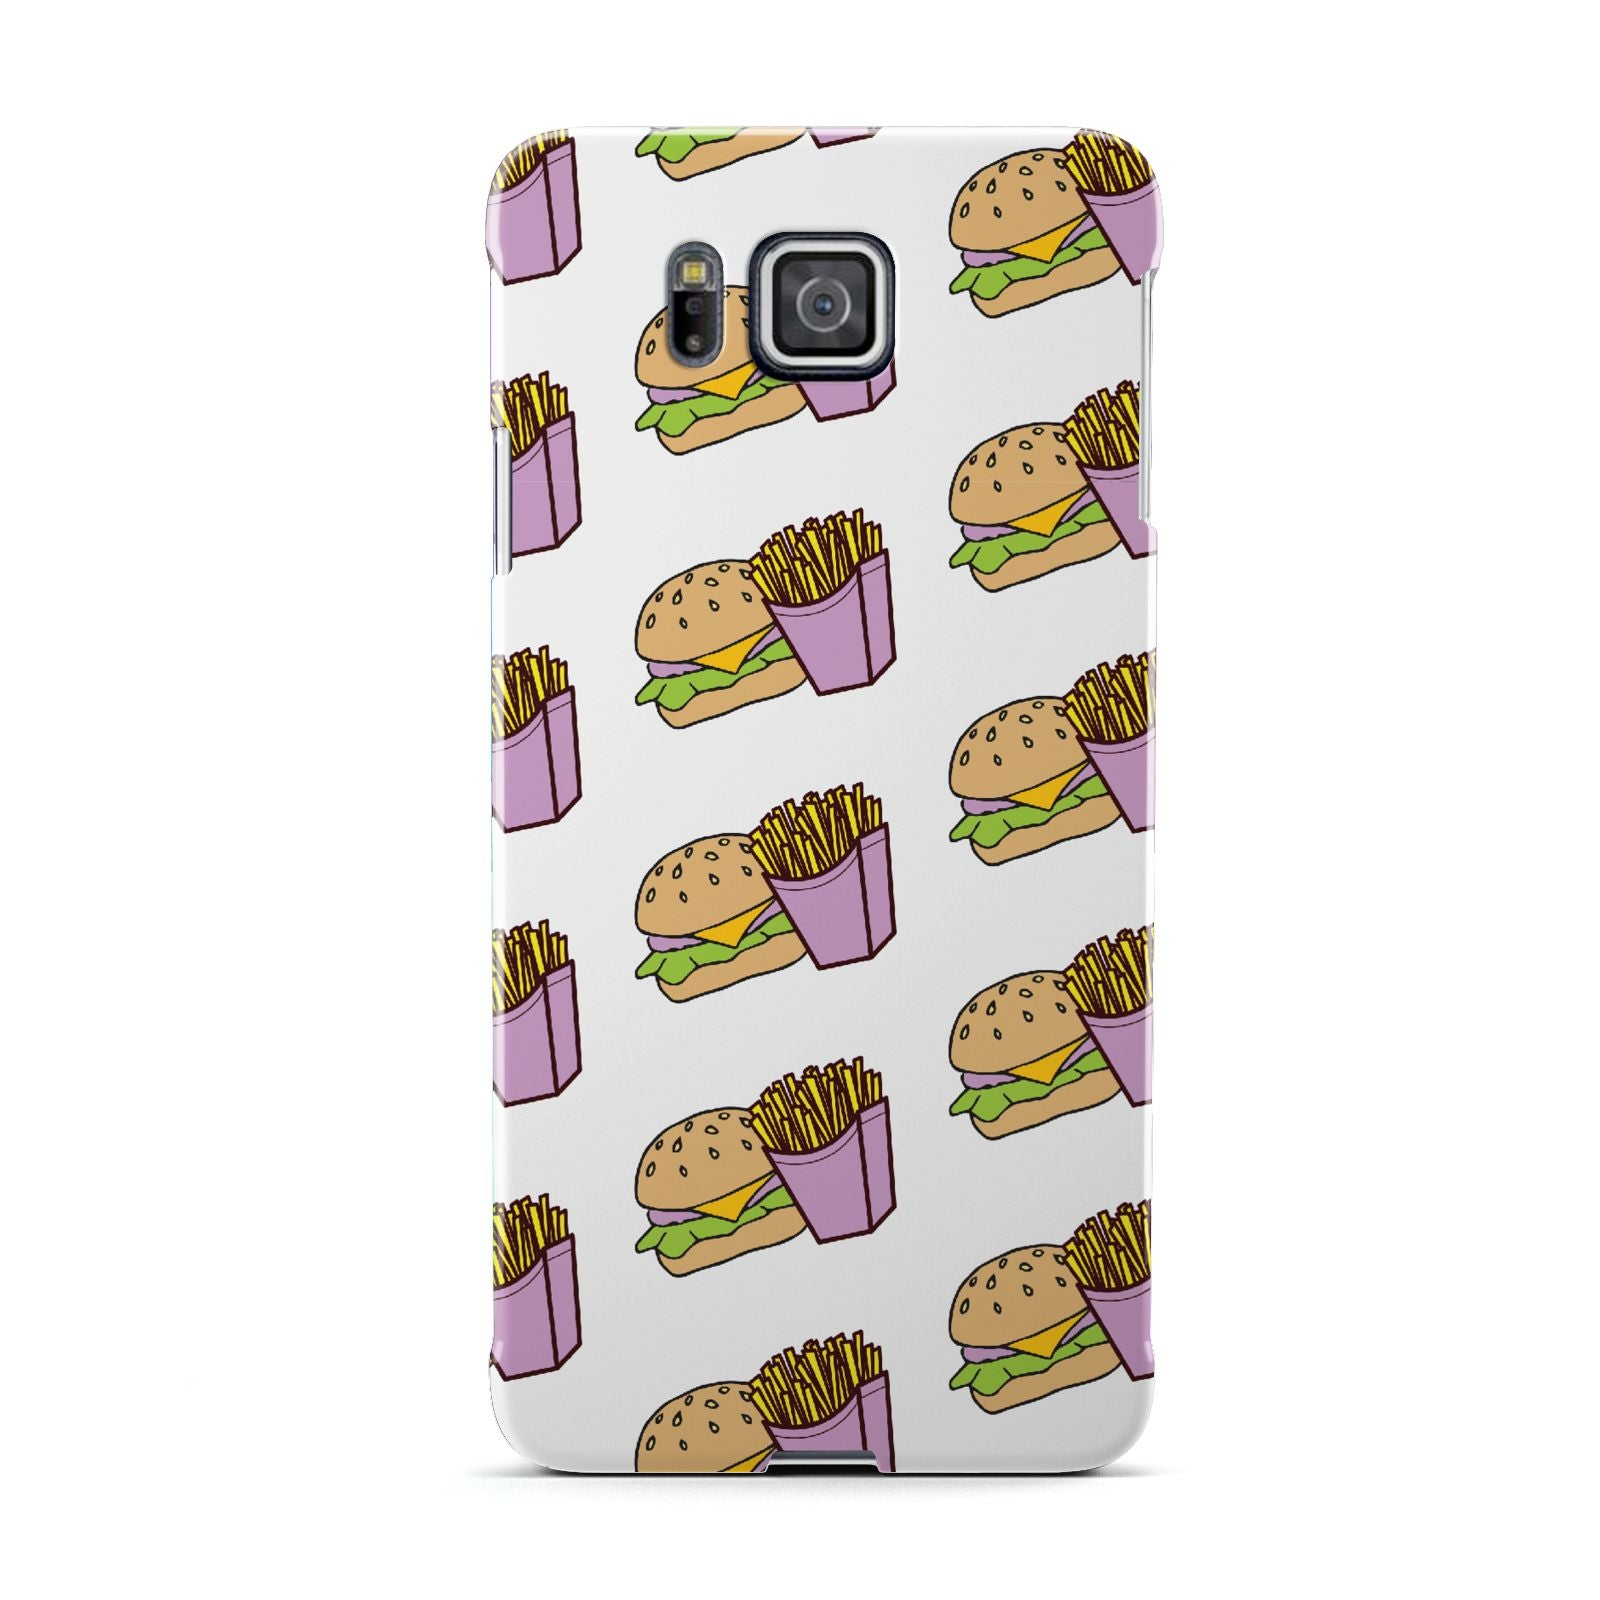 Burger Fries Fast Food Samsung Galaxy Alpha Case